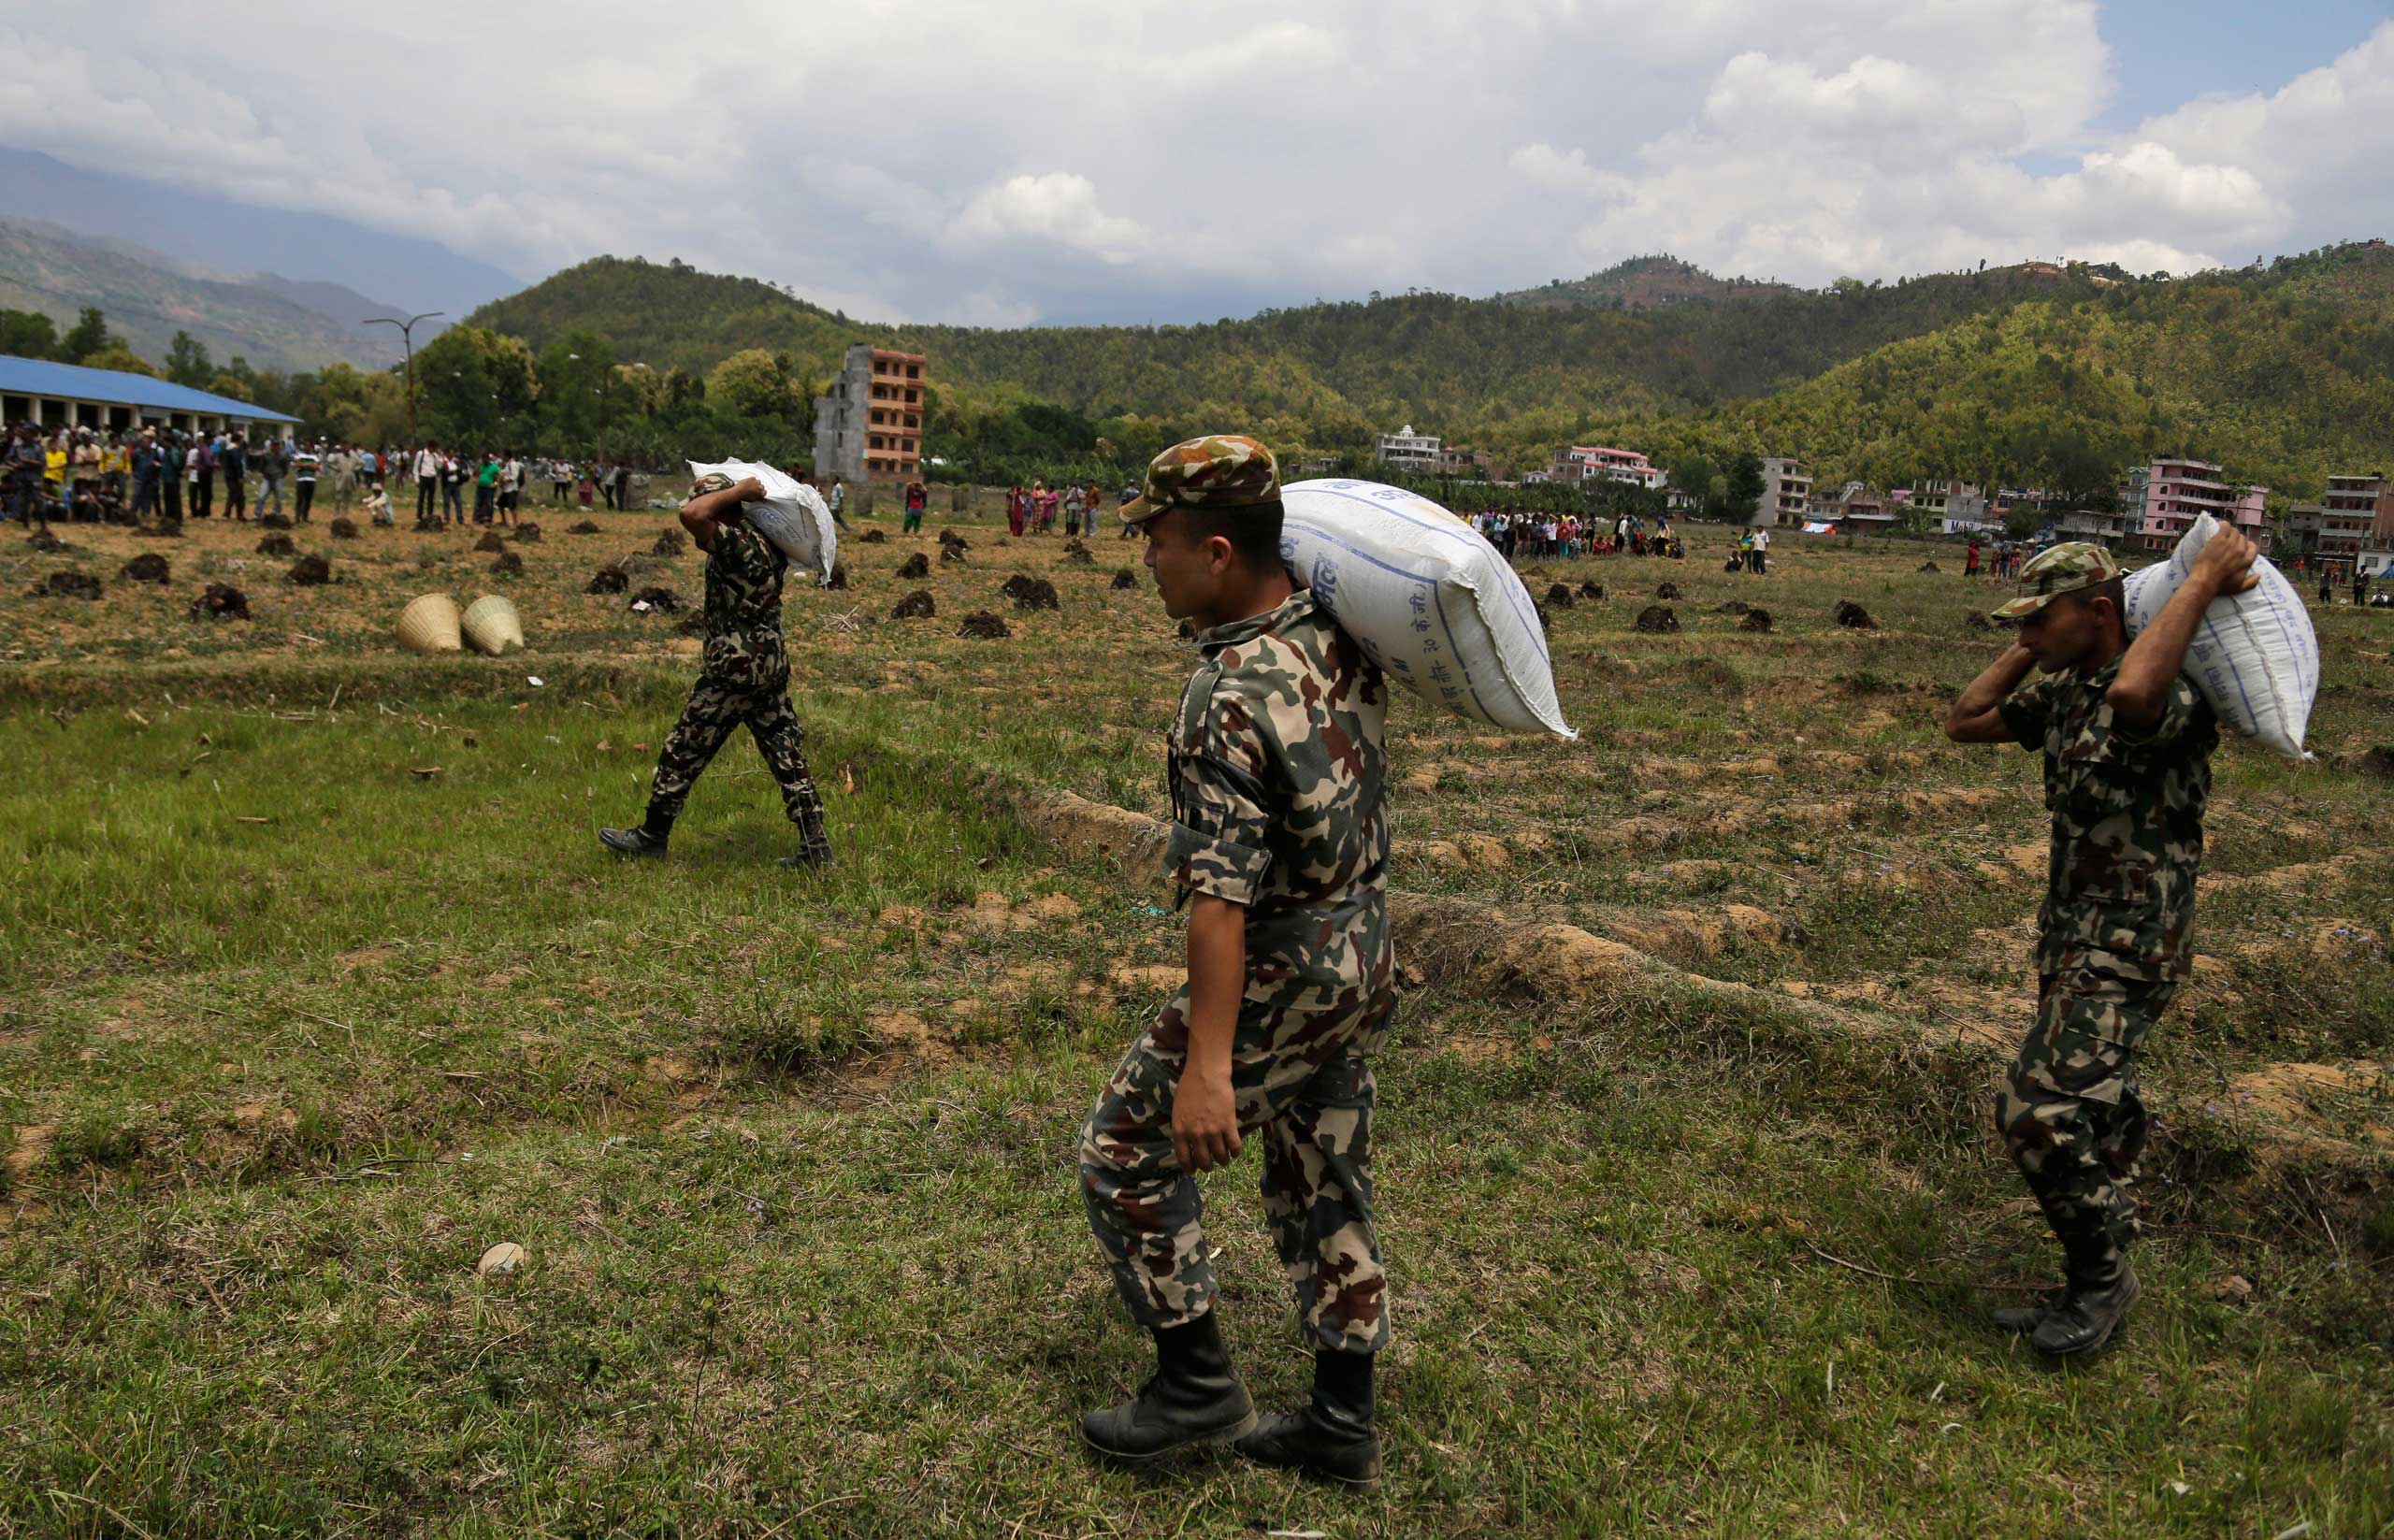 Nepalese soldiers unload relief material brought in by an Indian Air Force helicopter for victims of Saturday's earthquake at Trishuli Bazar in Nepal on April 27, 2015.